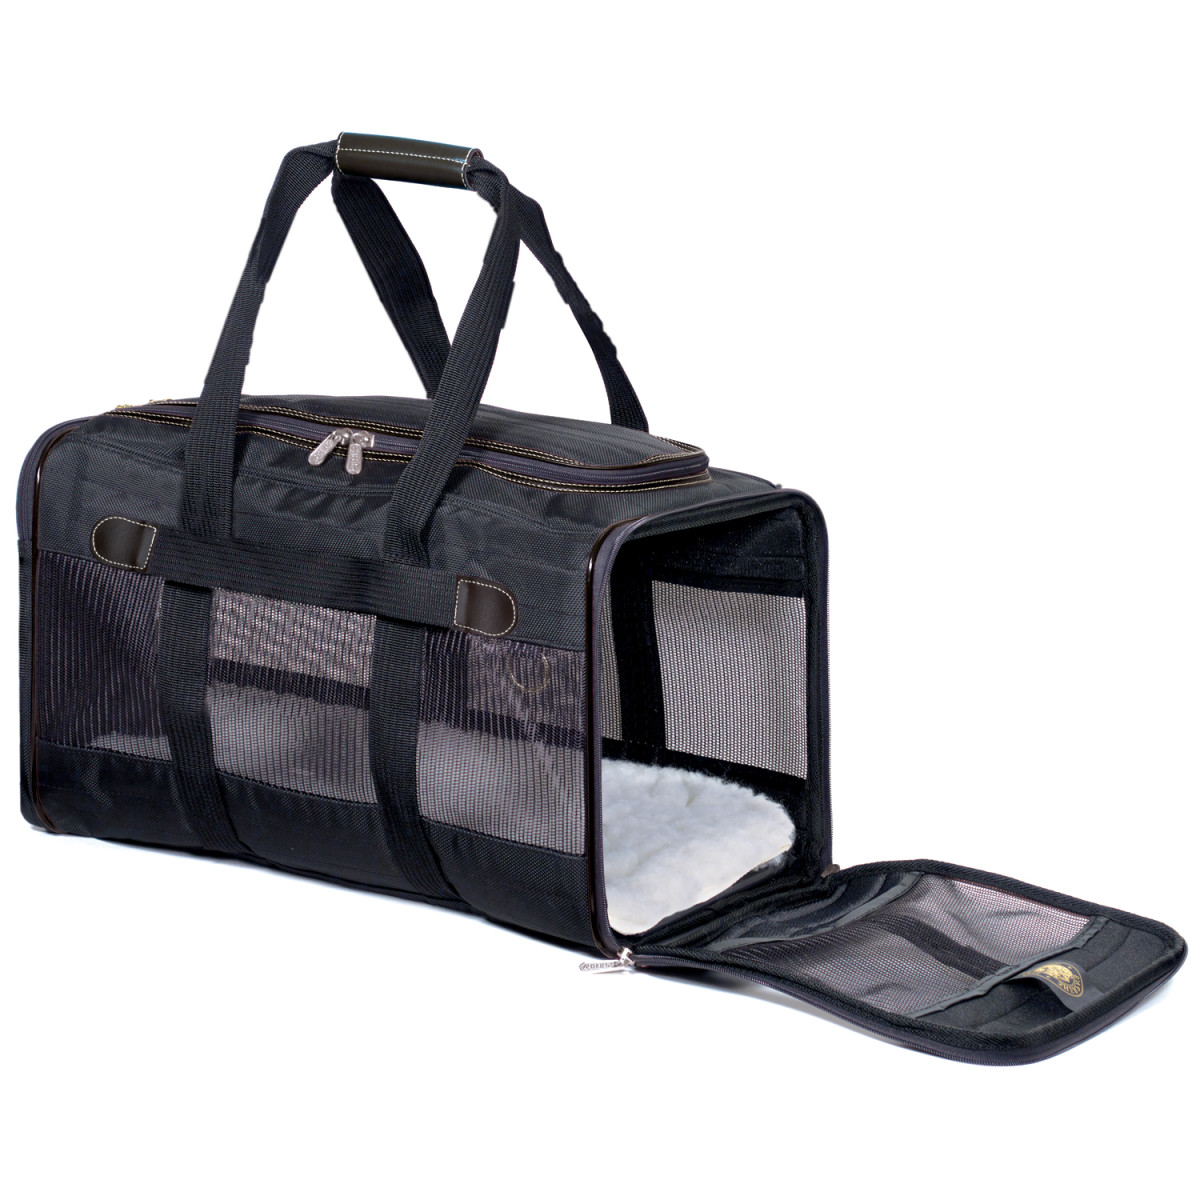 This lightweight premium pet carrier from Sherpa is comfortable and provides plenty of ventilation for your dog.